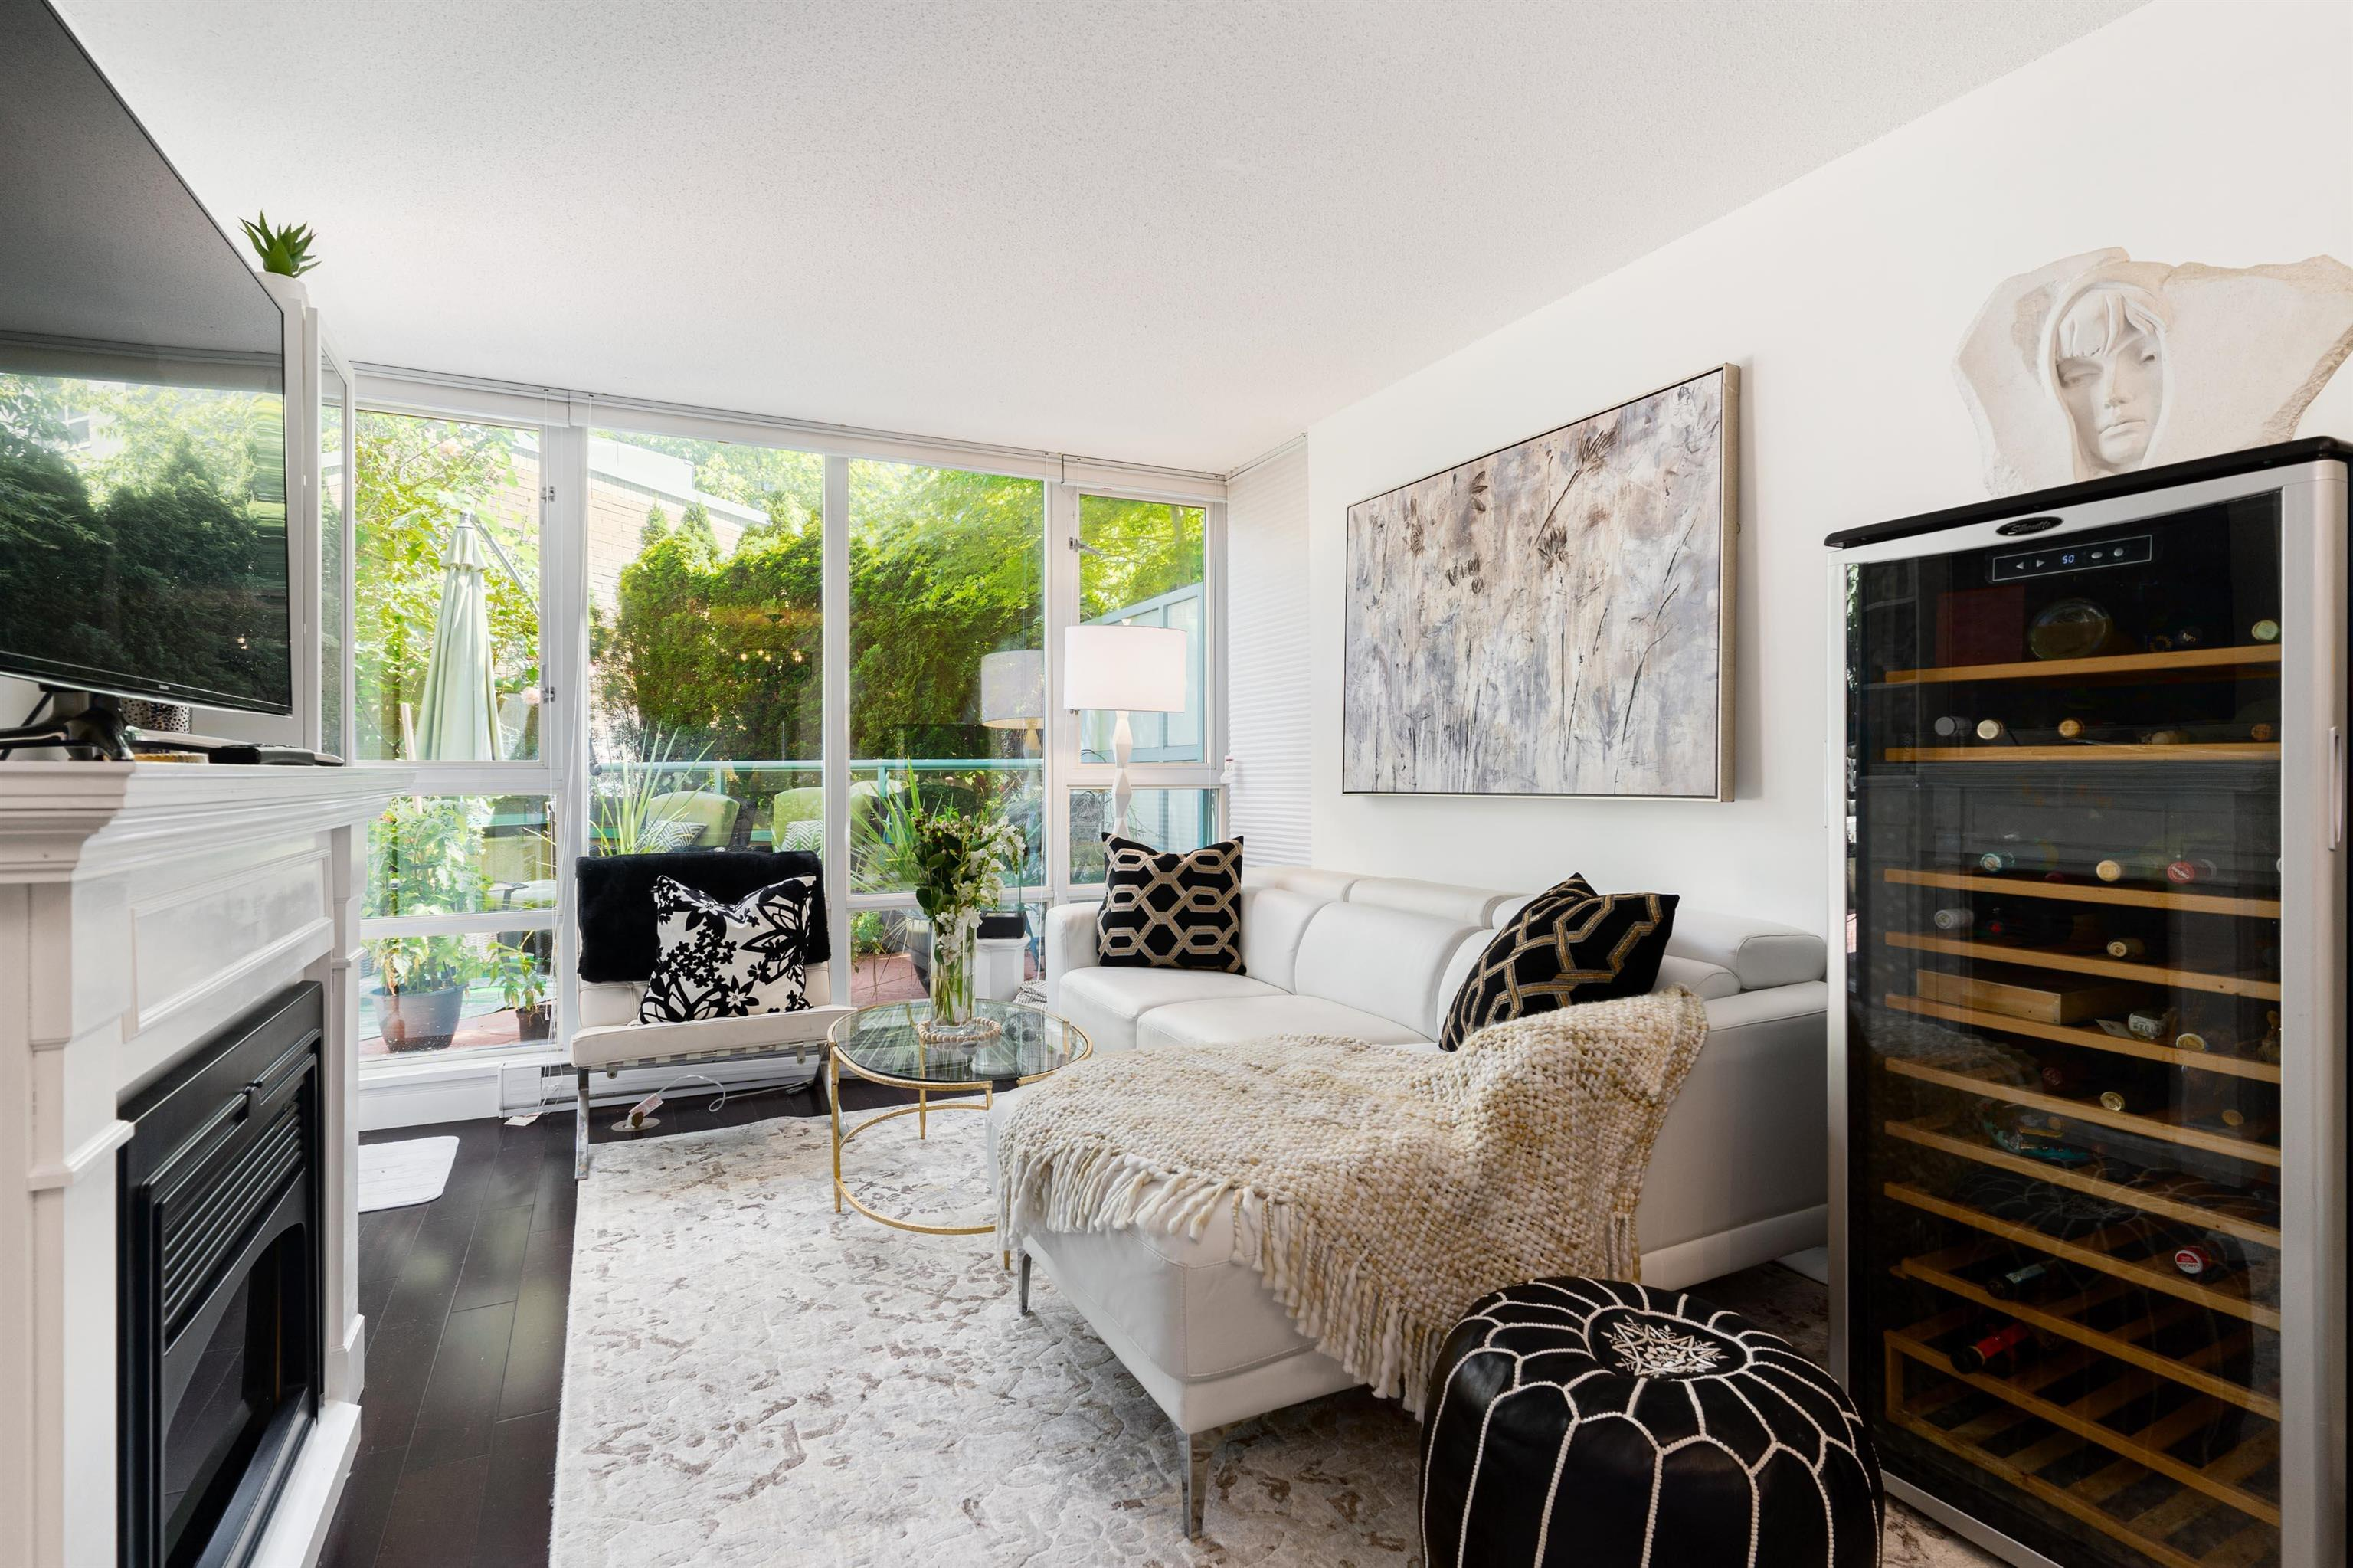 202 1033 MARINASIDE CRESCENT - Yaletown Apartment/Condo for sale, 2 Bedrooms (R2623495) - #1